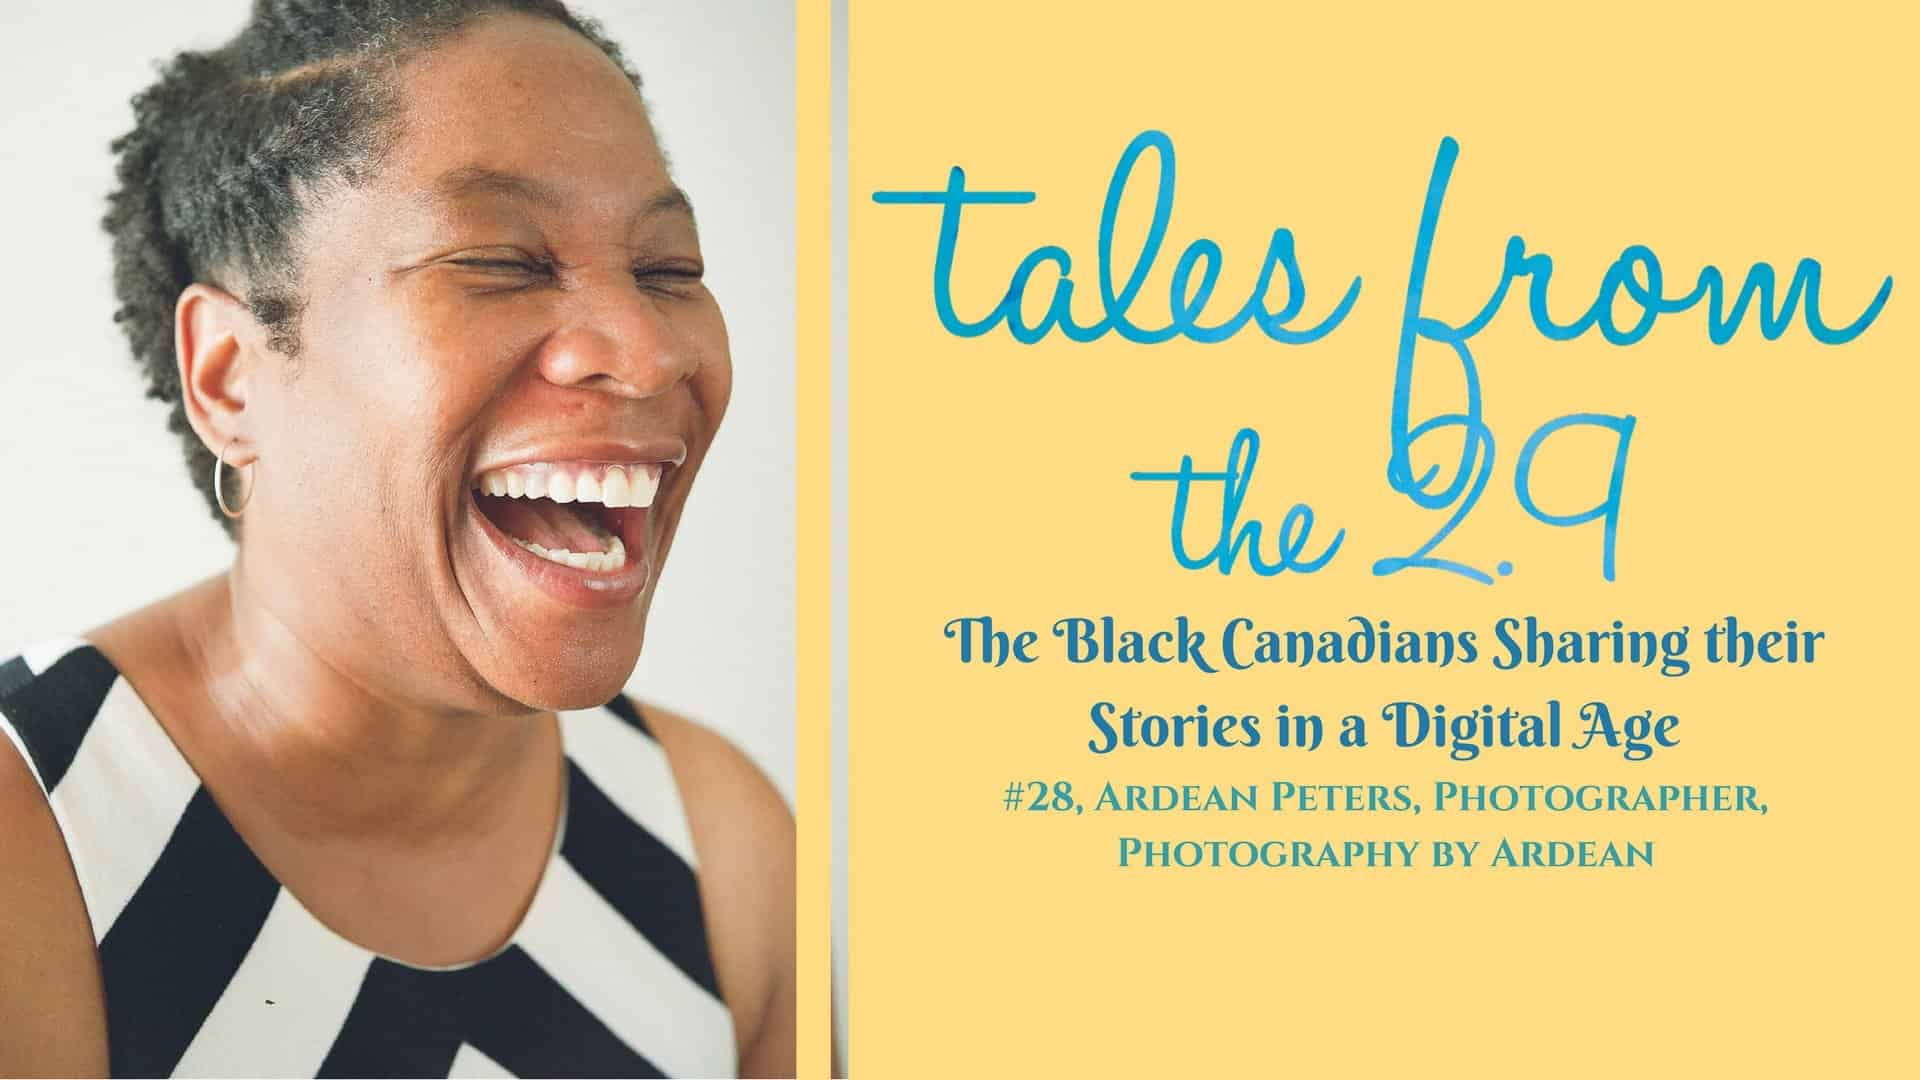 Tales from the 2.9 — The Black Canadians Sharing their Stories in a Digital Age — Vol. 2 #28, Ardean Peters, Photographer, Photography by Ardean (Featured Image)